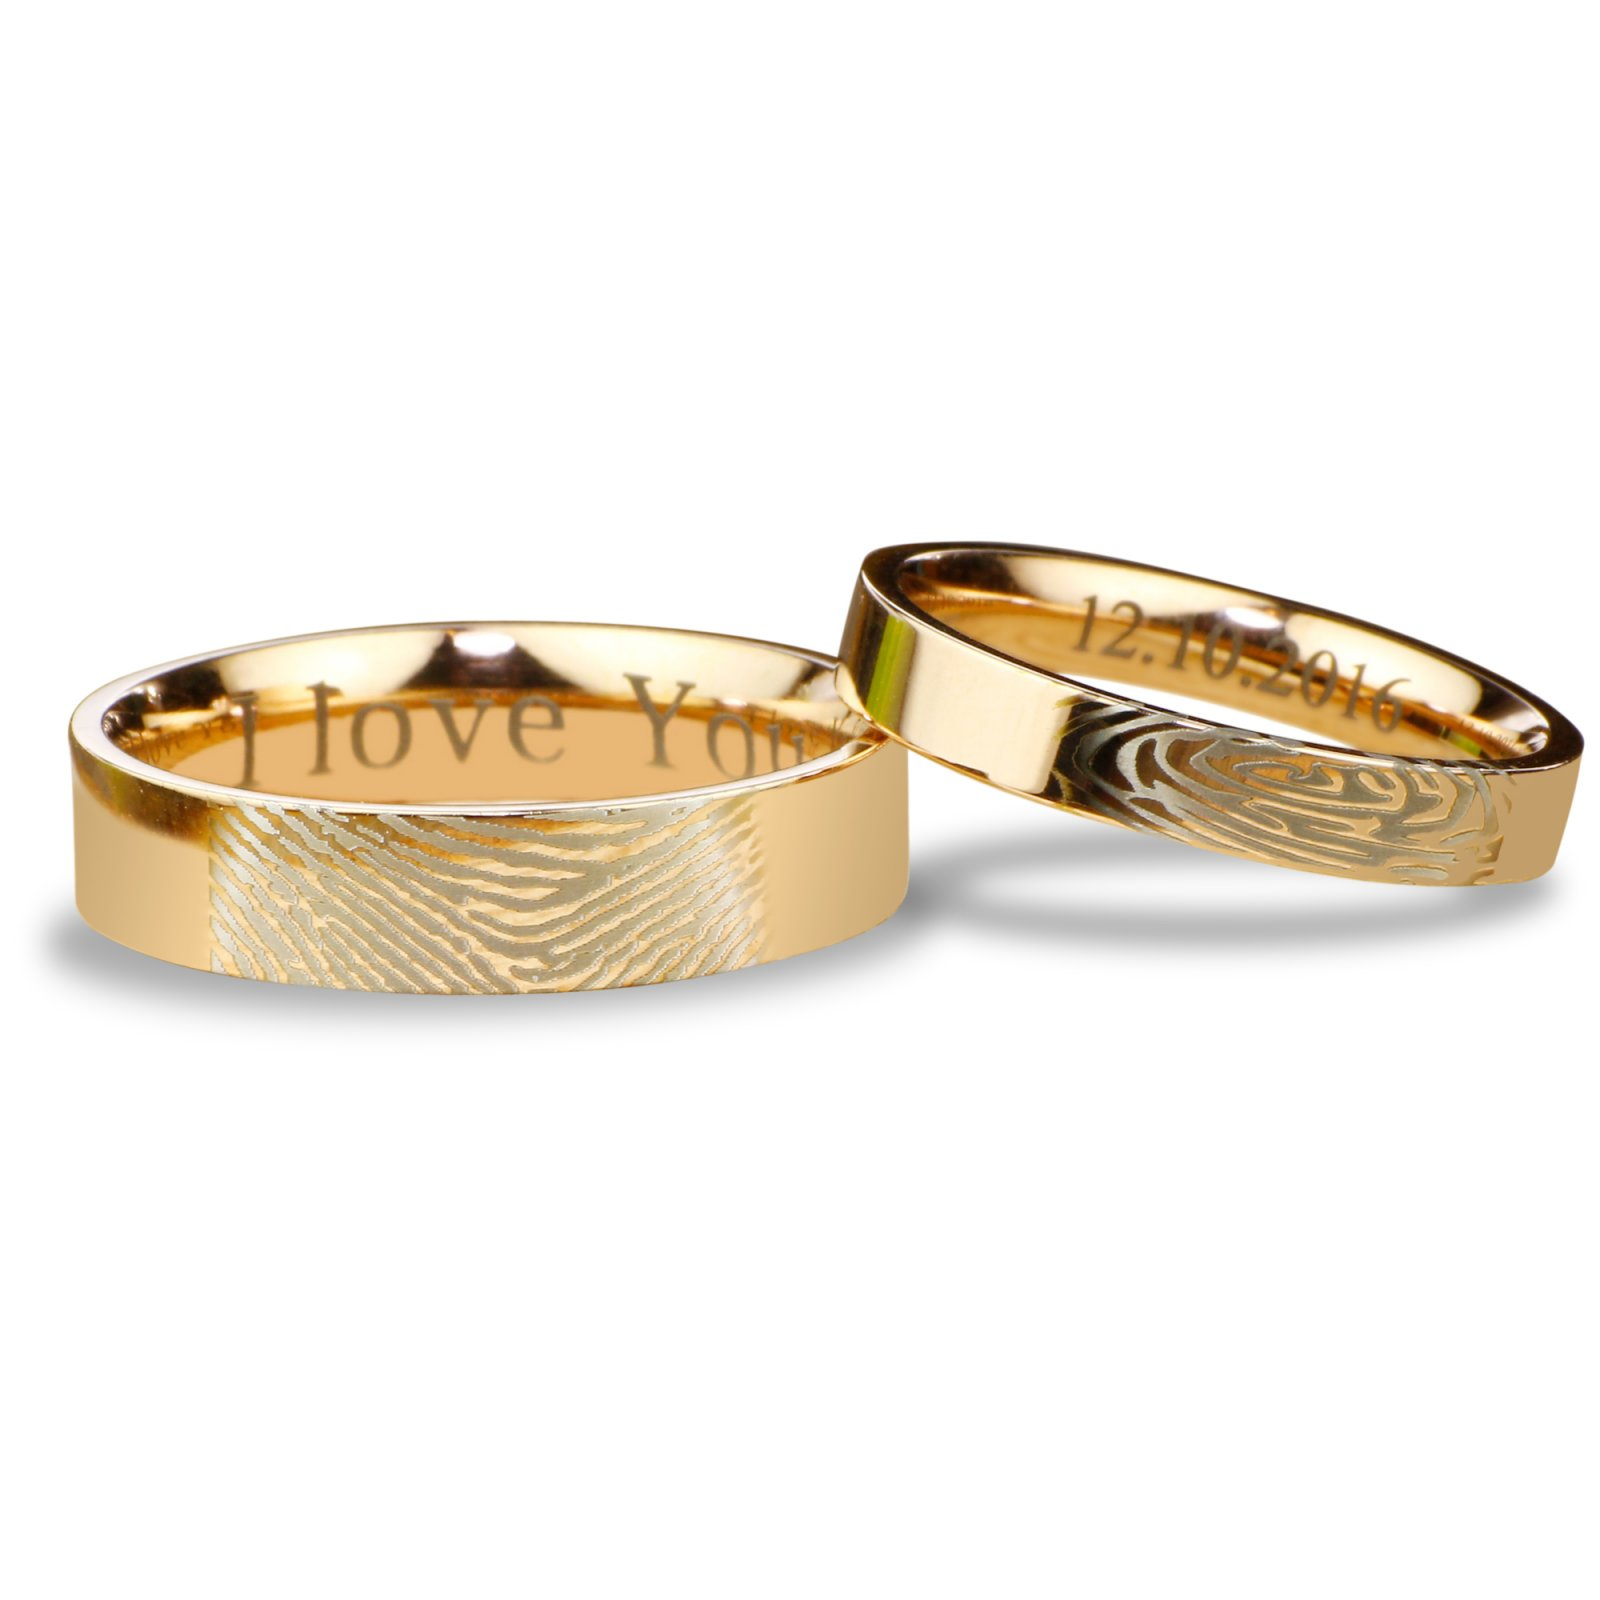 elizabeth designs blog the shaped rings wedding anne heart fingerprint